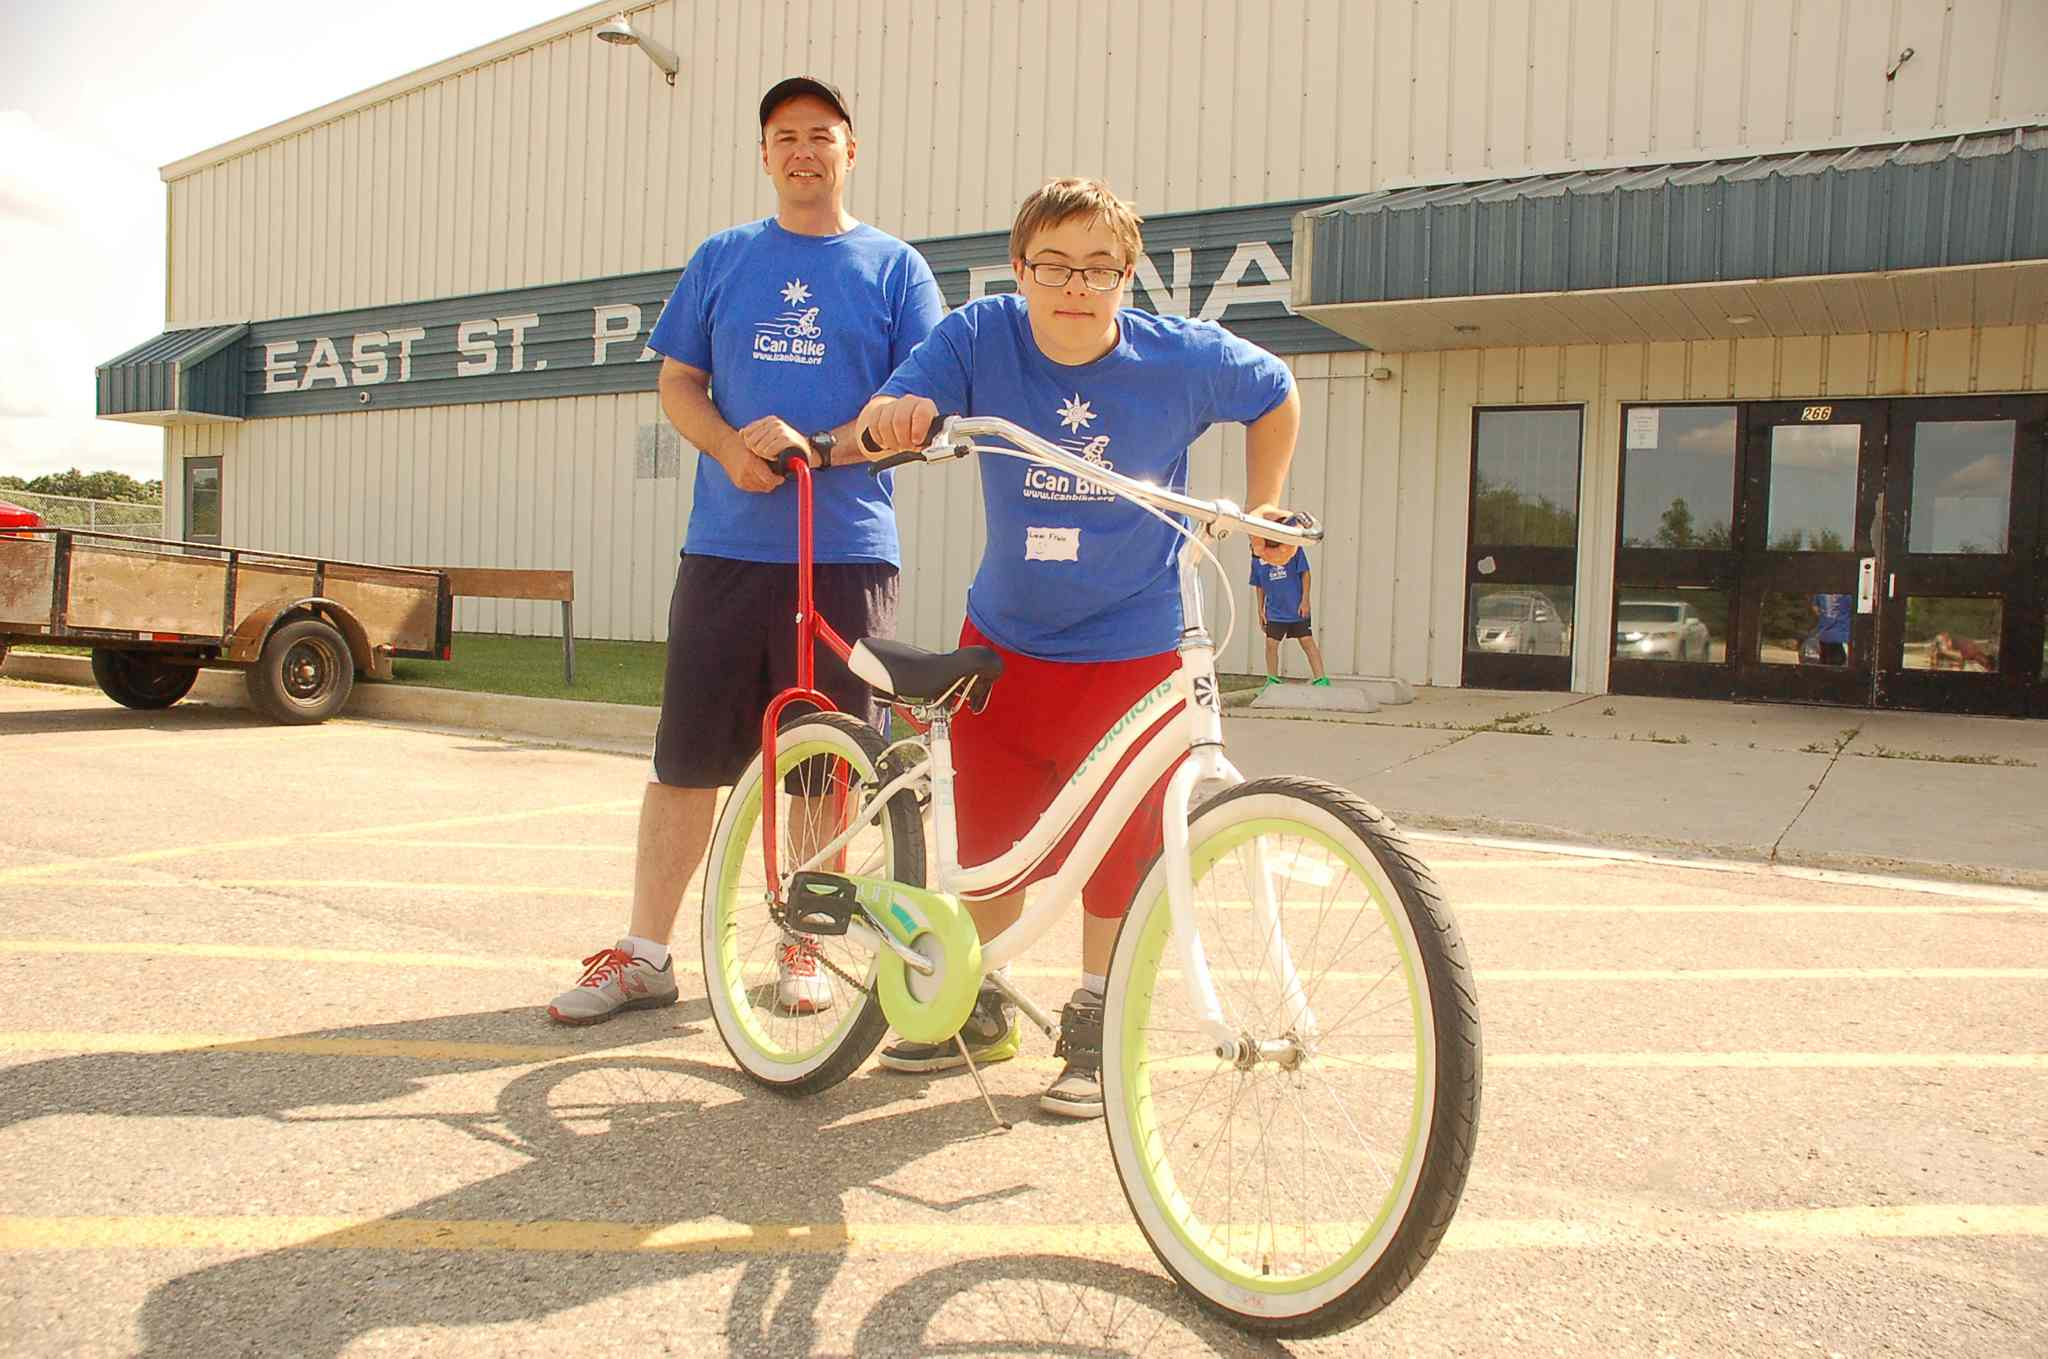 iCan Shine bike camp host Sean Frain is shown with son Liam at East St. Paul Community Centre.